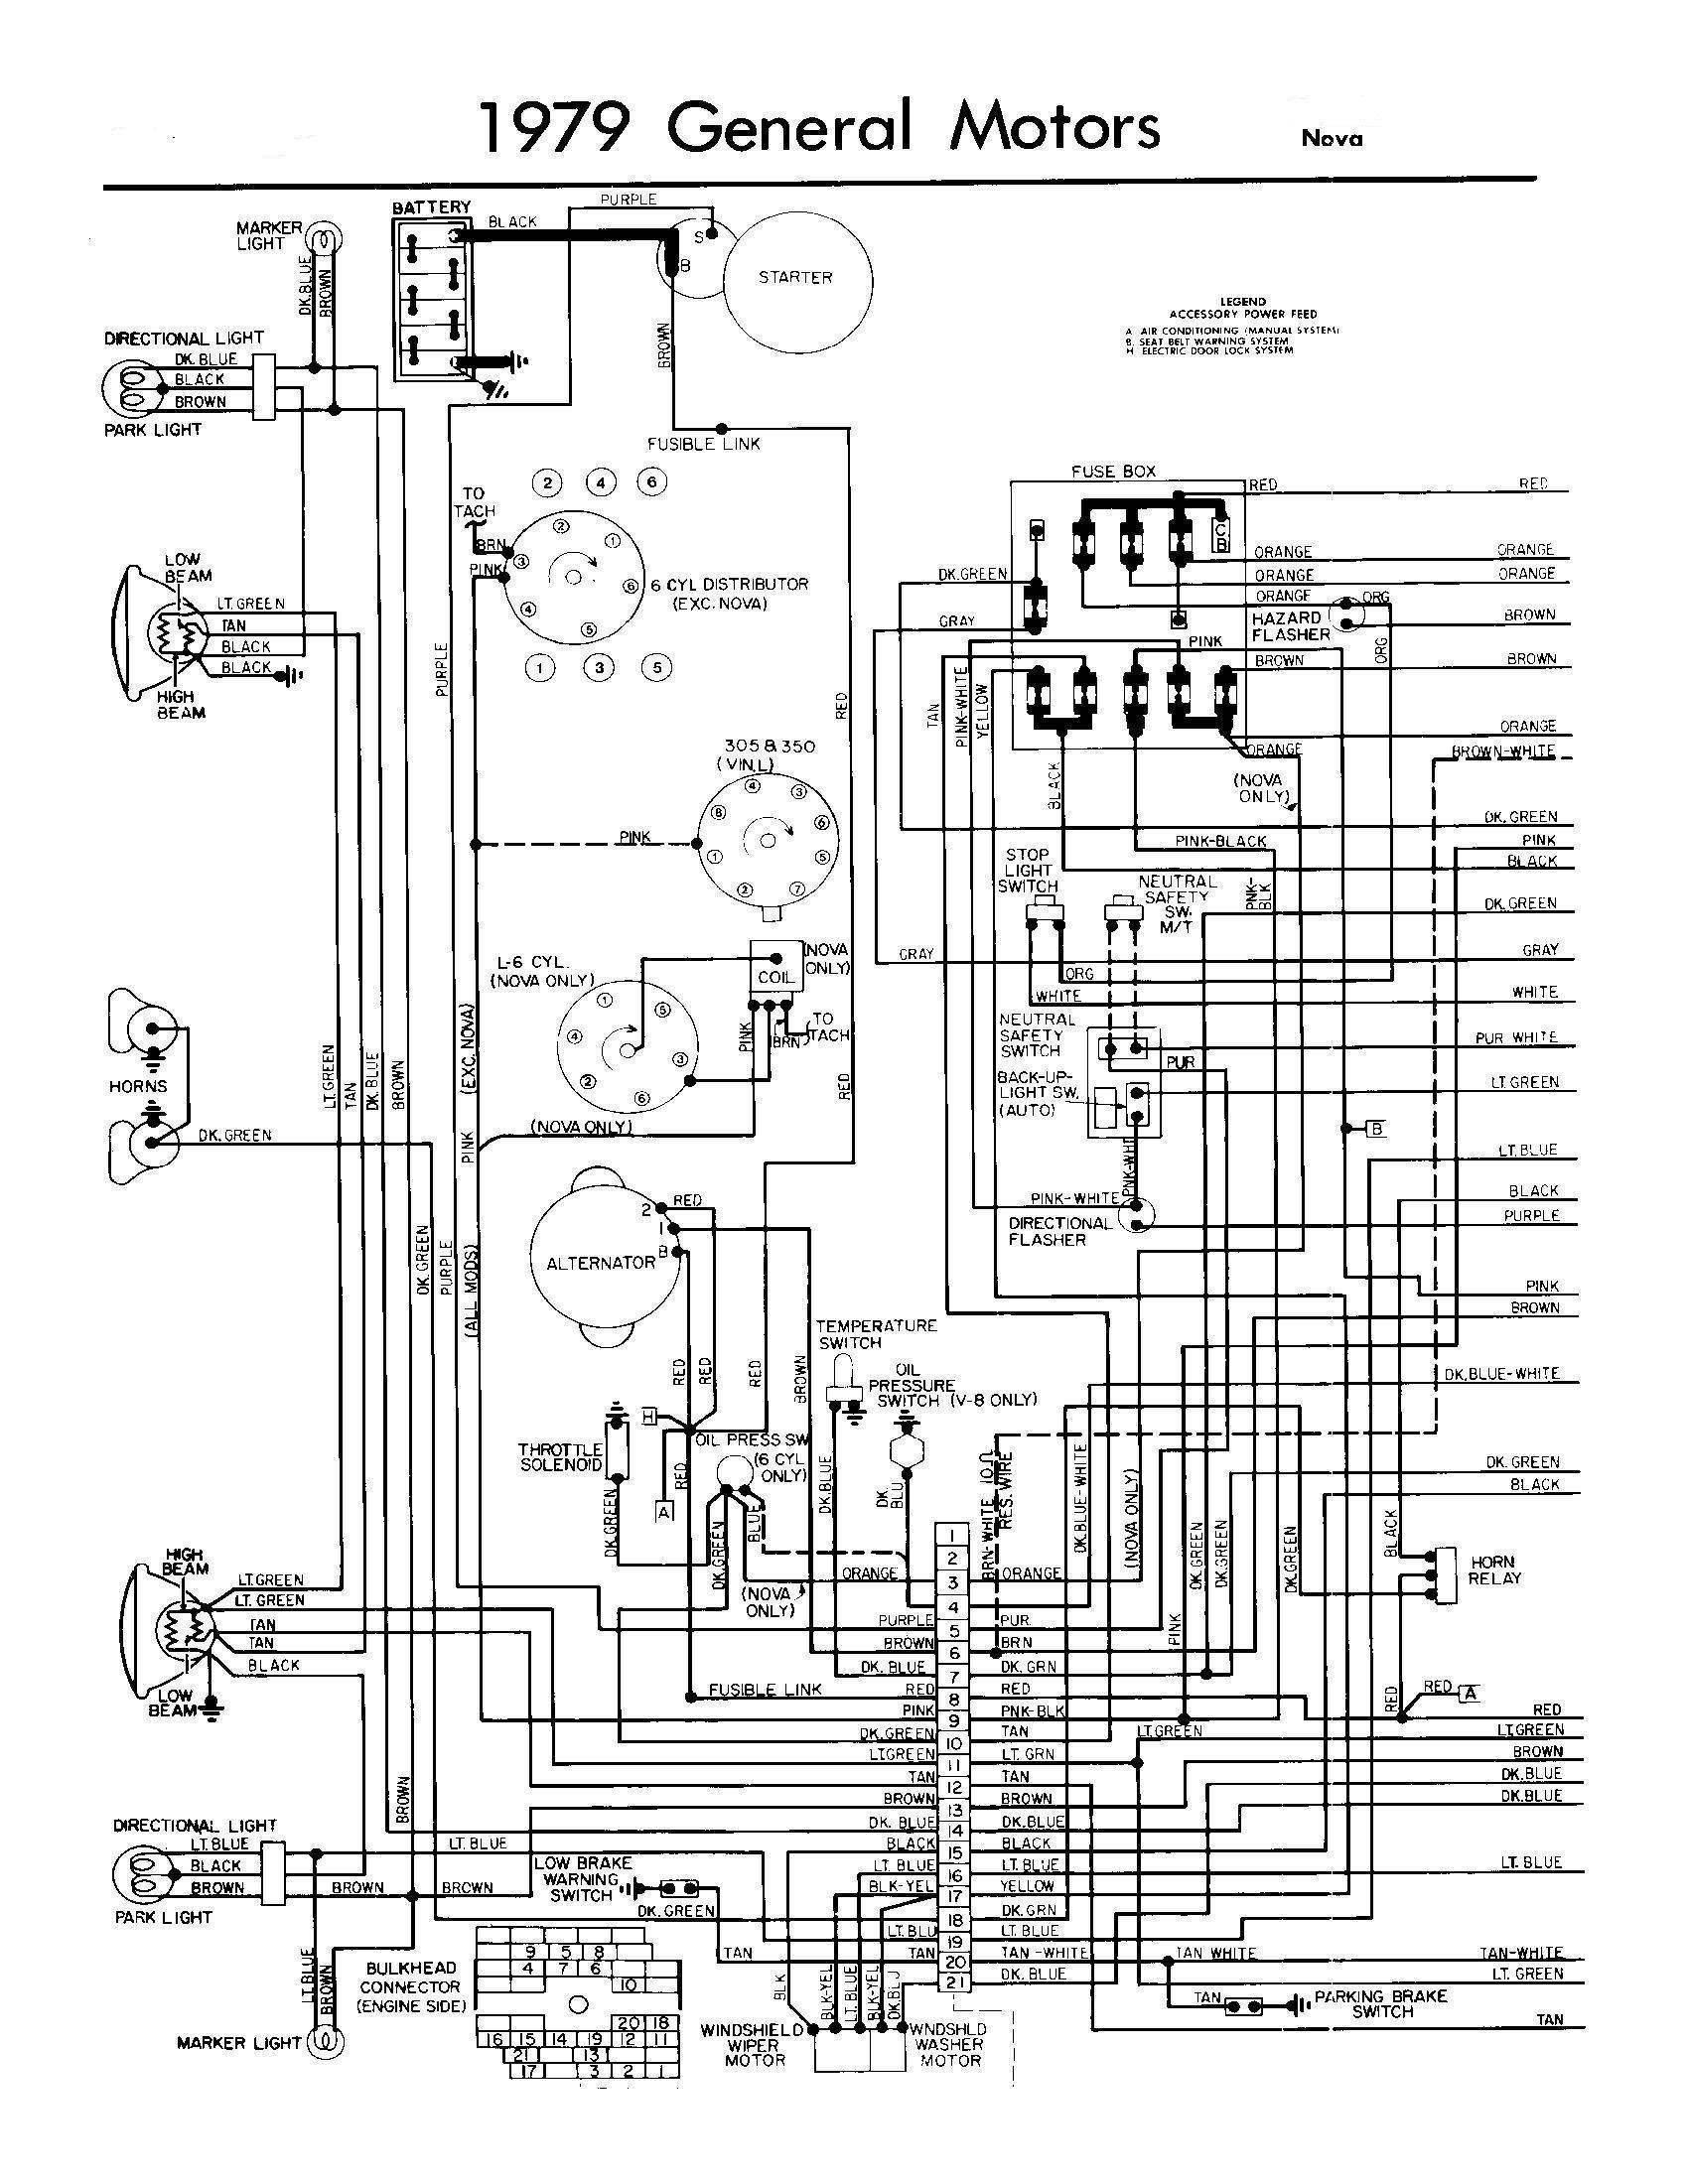 1995 dodge neon engine diagram